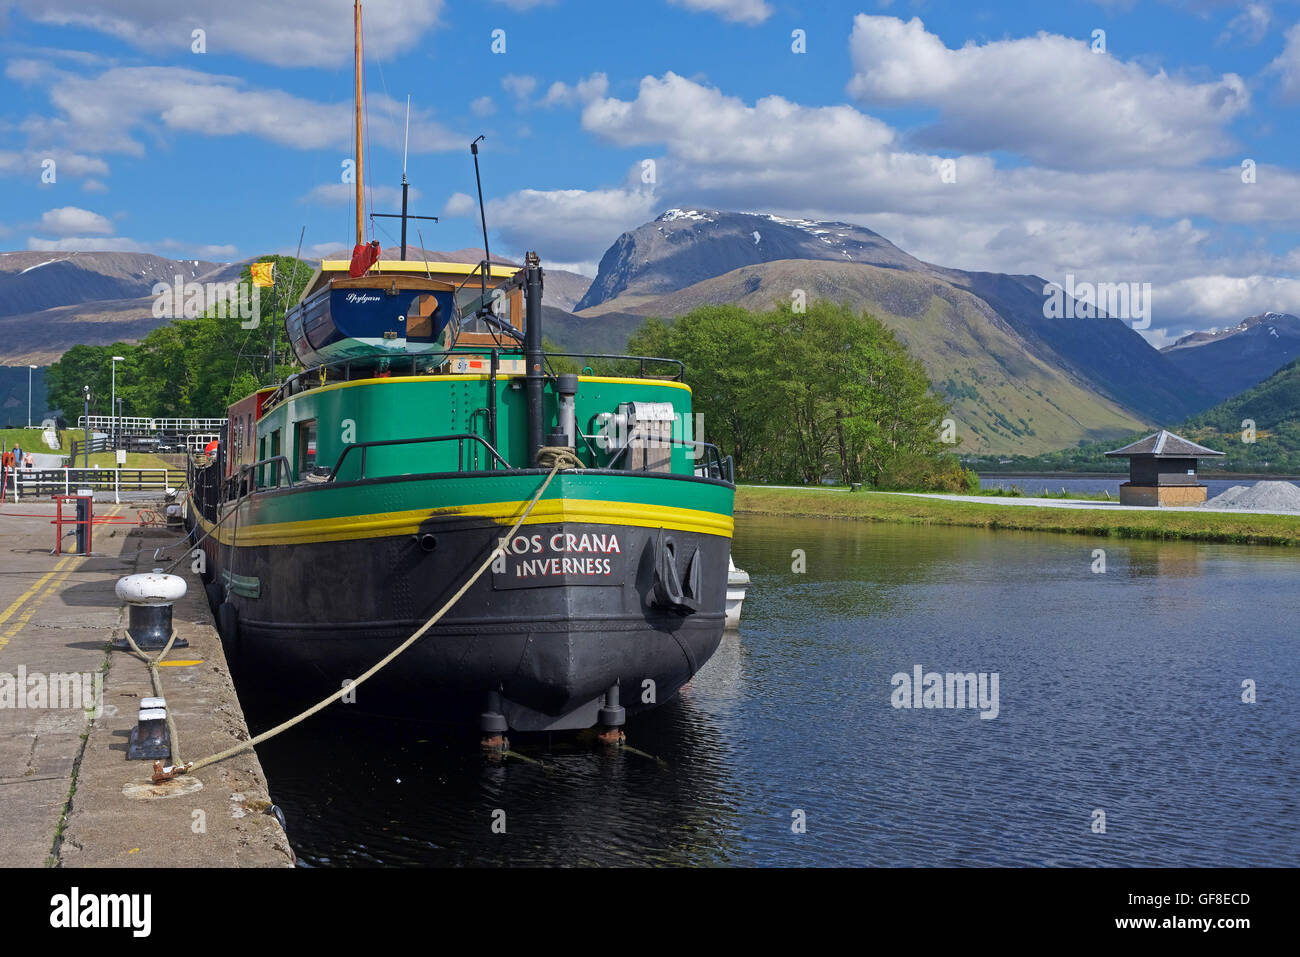 A local sailing club Regatta from Fort William entering the sea lock at Corpach before making for Loch Ness.  SCO - Stock Image